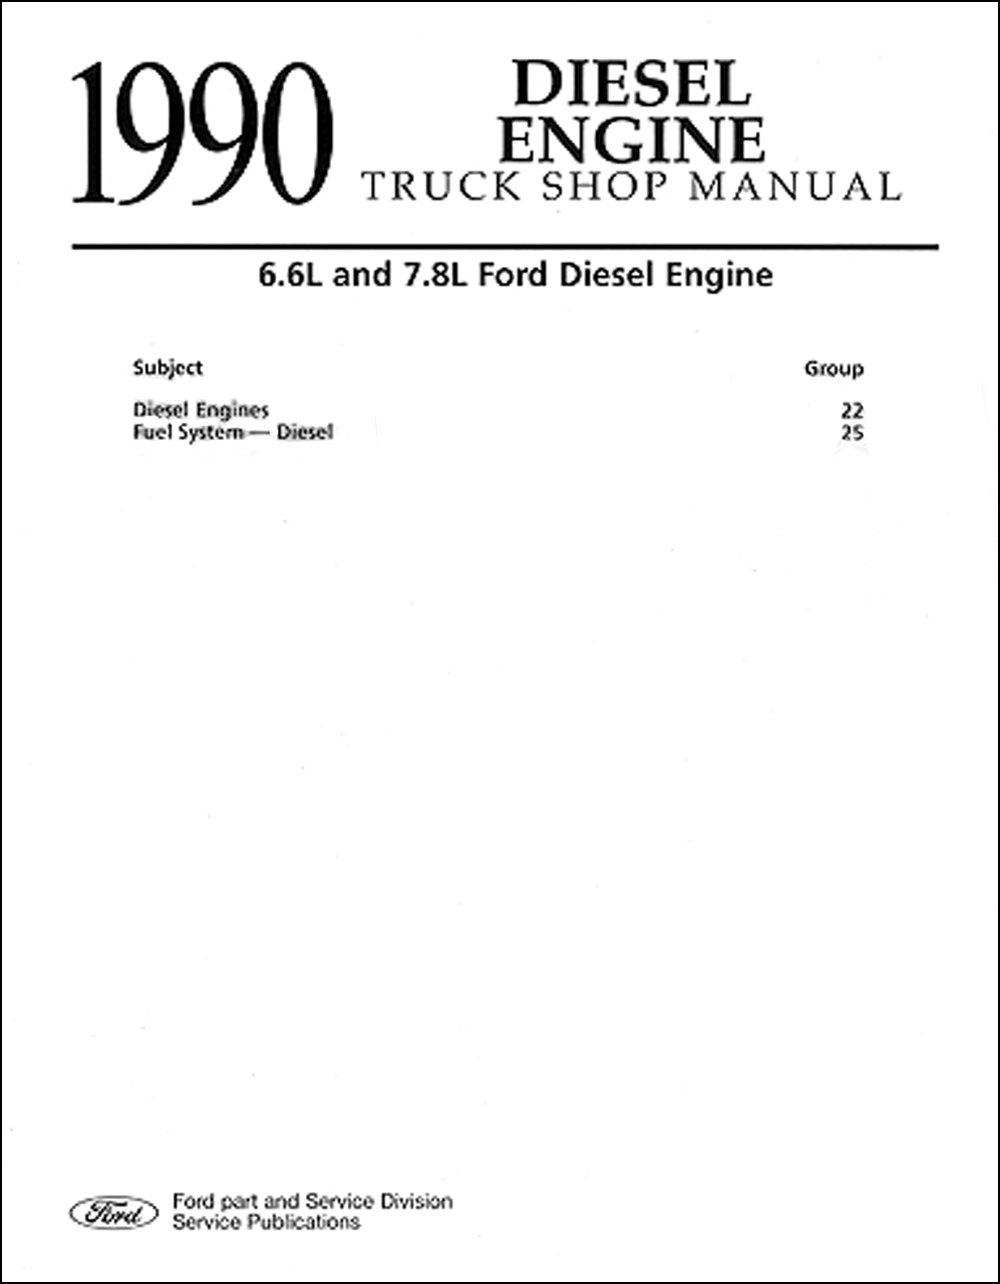 1990 Ford Truck 66 And 78 Diesel Engine Repair Shop Manual Schematics Original